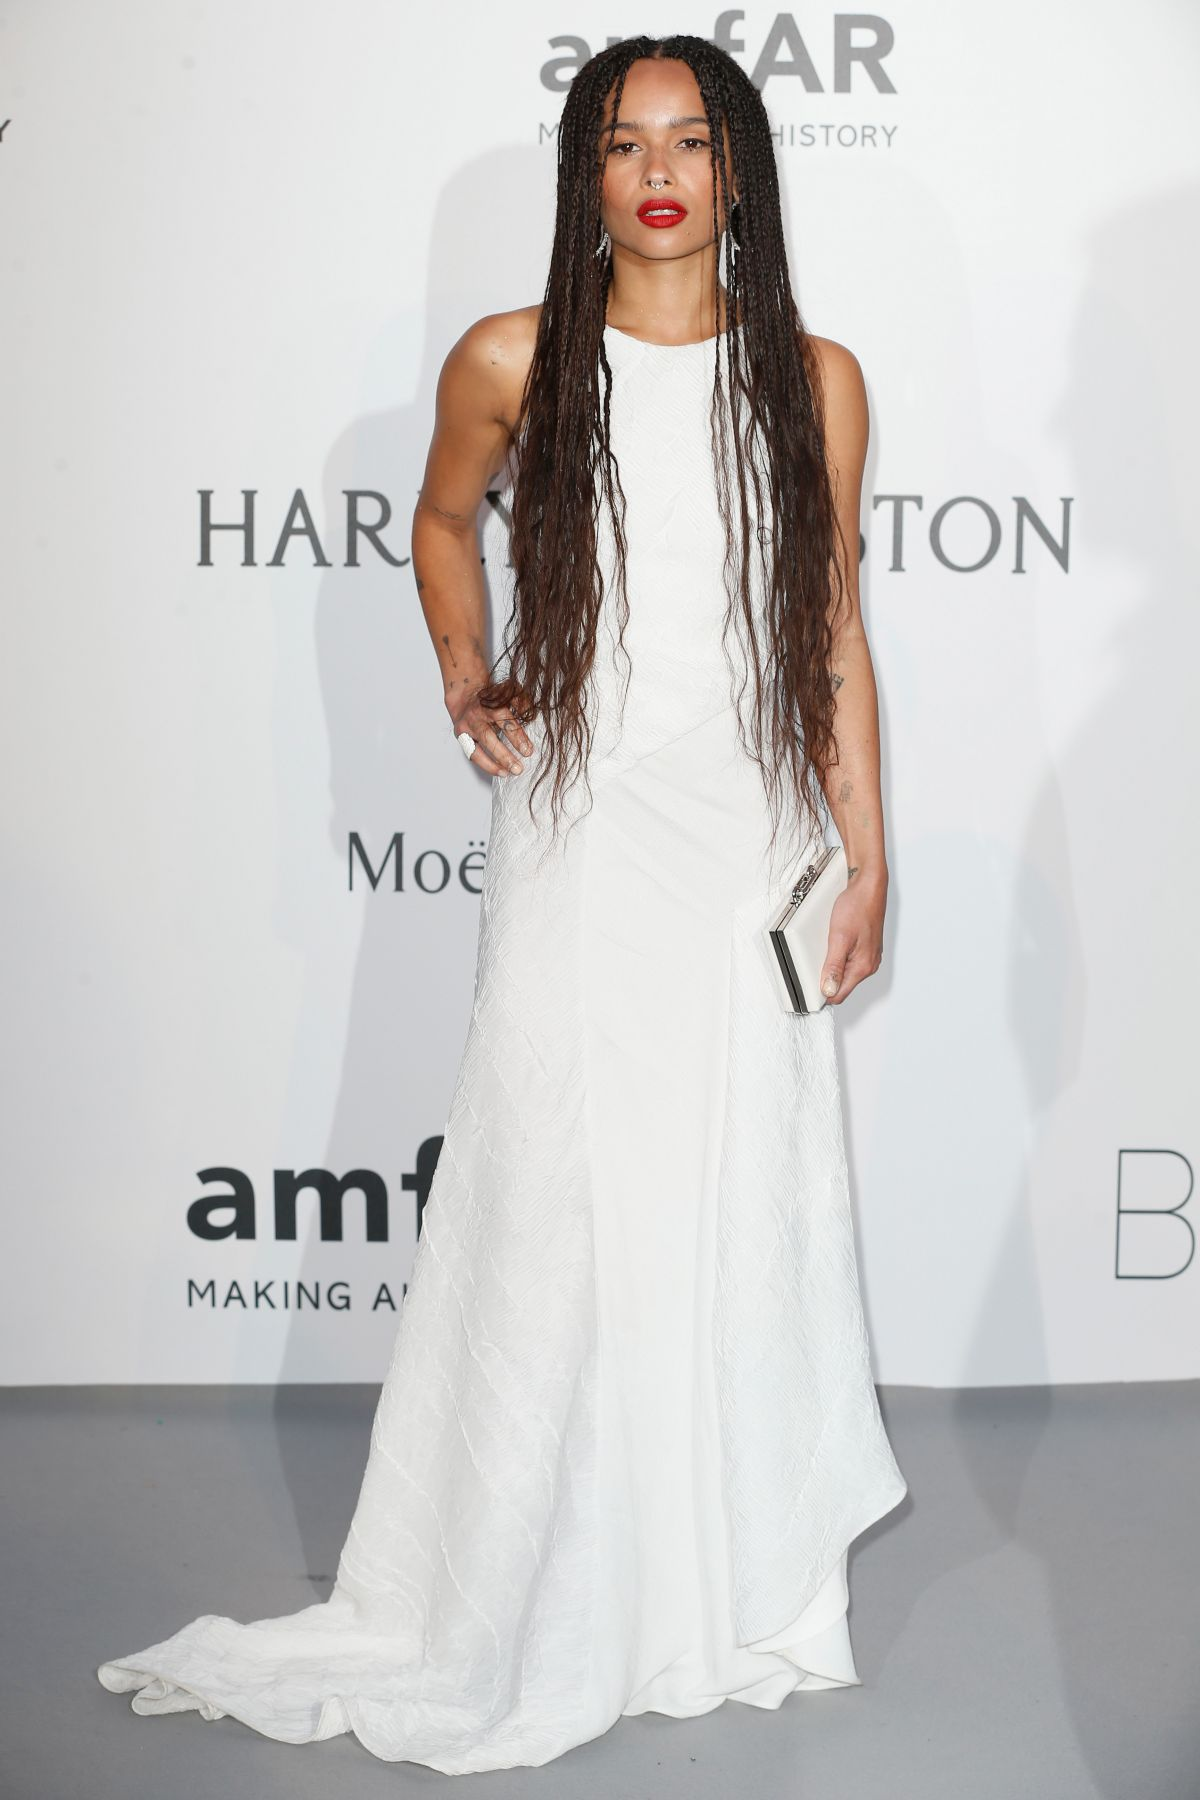 zoe-kravitz-at-amfar-s-2015-cinema-against-aids-gala-in-cap-d-antibes_4.jpg